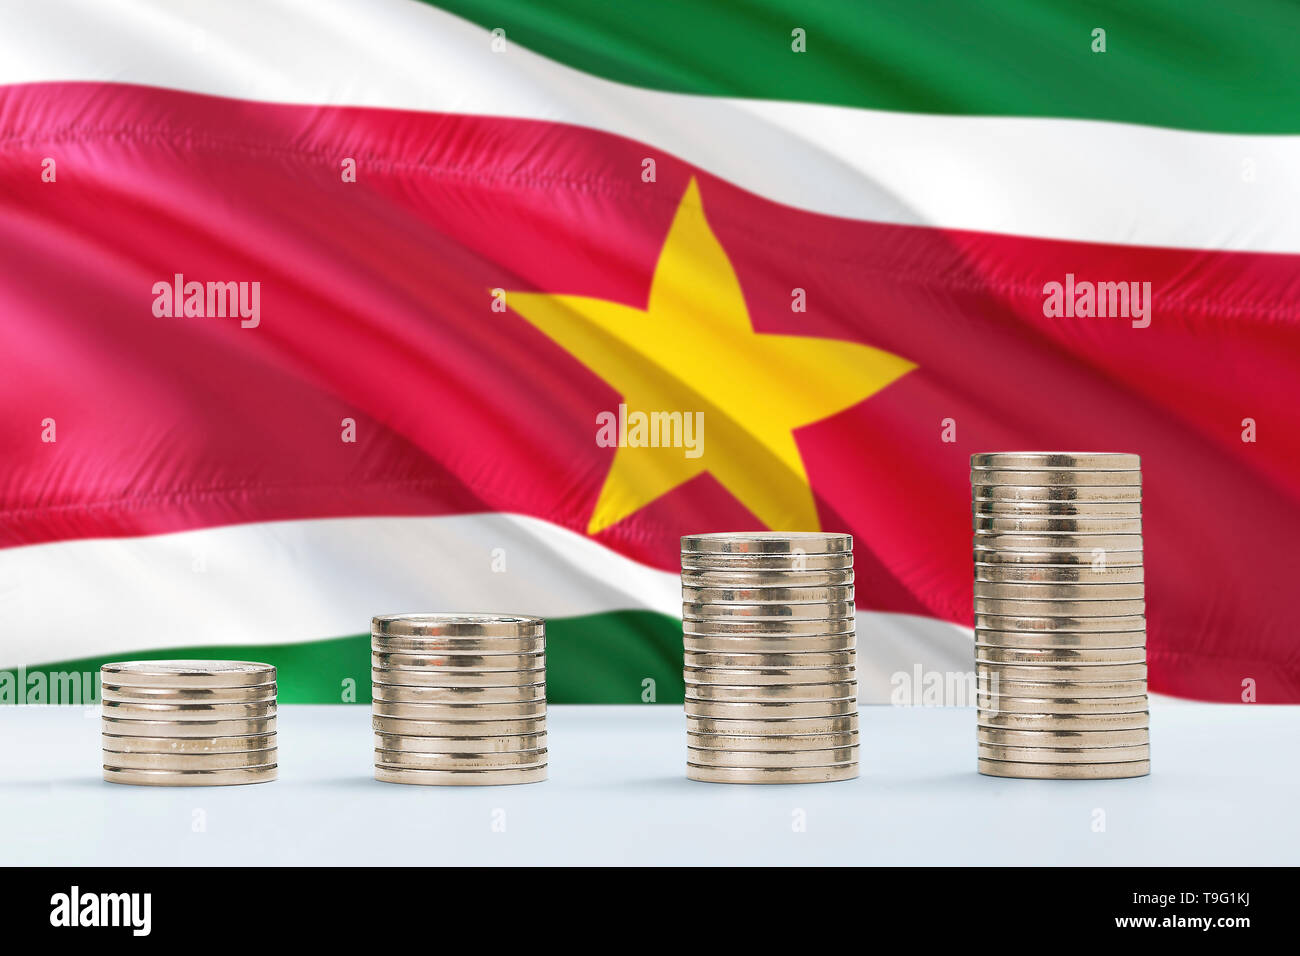 Suriname flag waving in the background with rows of coins for finance and business concept. Saving money. - Stock Image